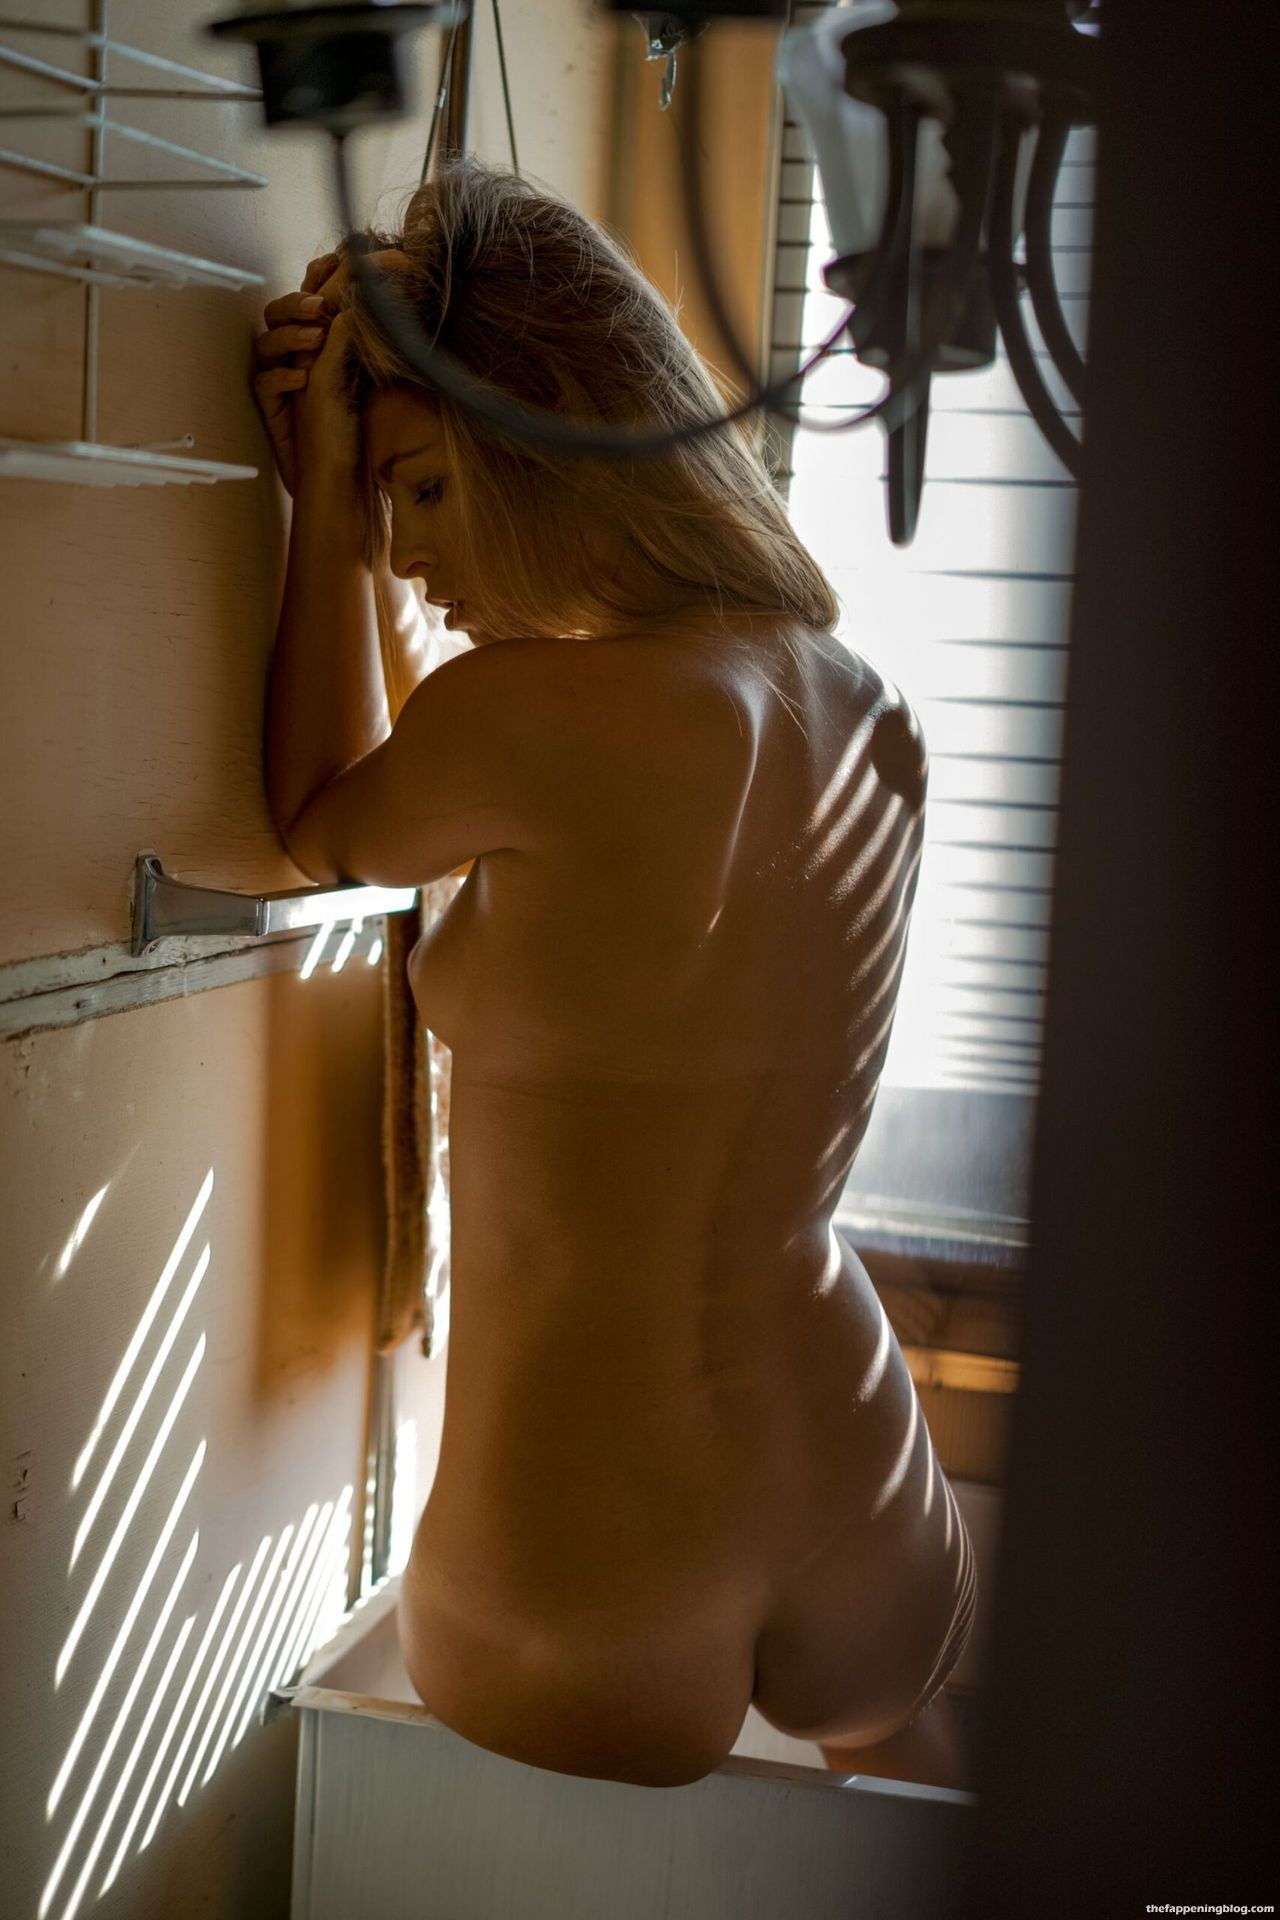 Marisa-Papen-Stunning-Naked-Body-5-scaled1-thefappeningblog.com_.jpg